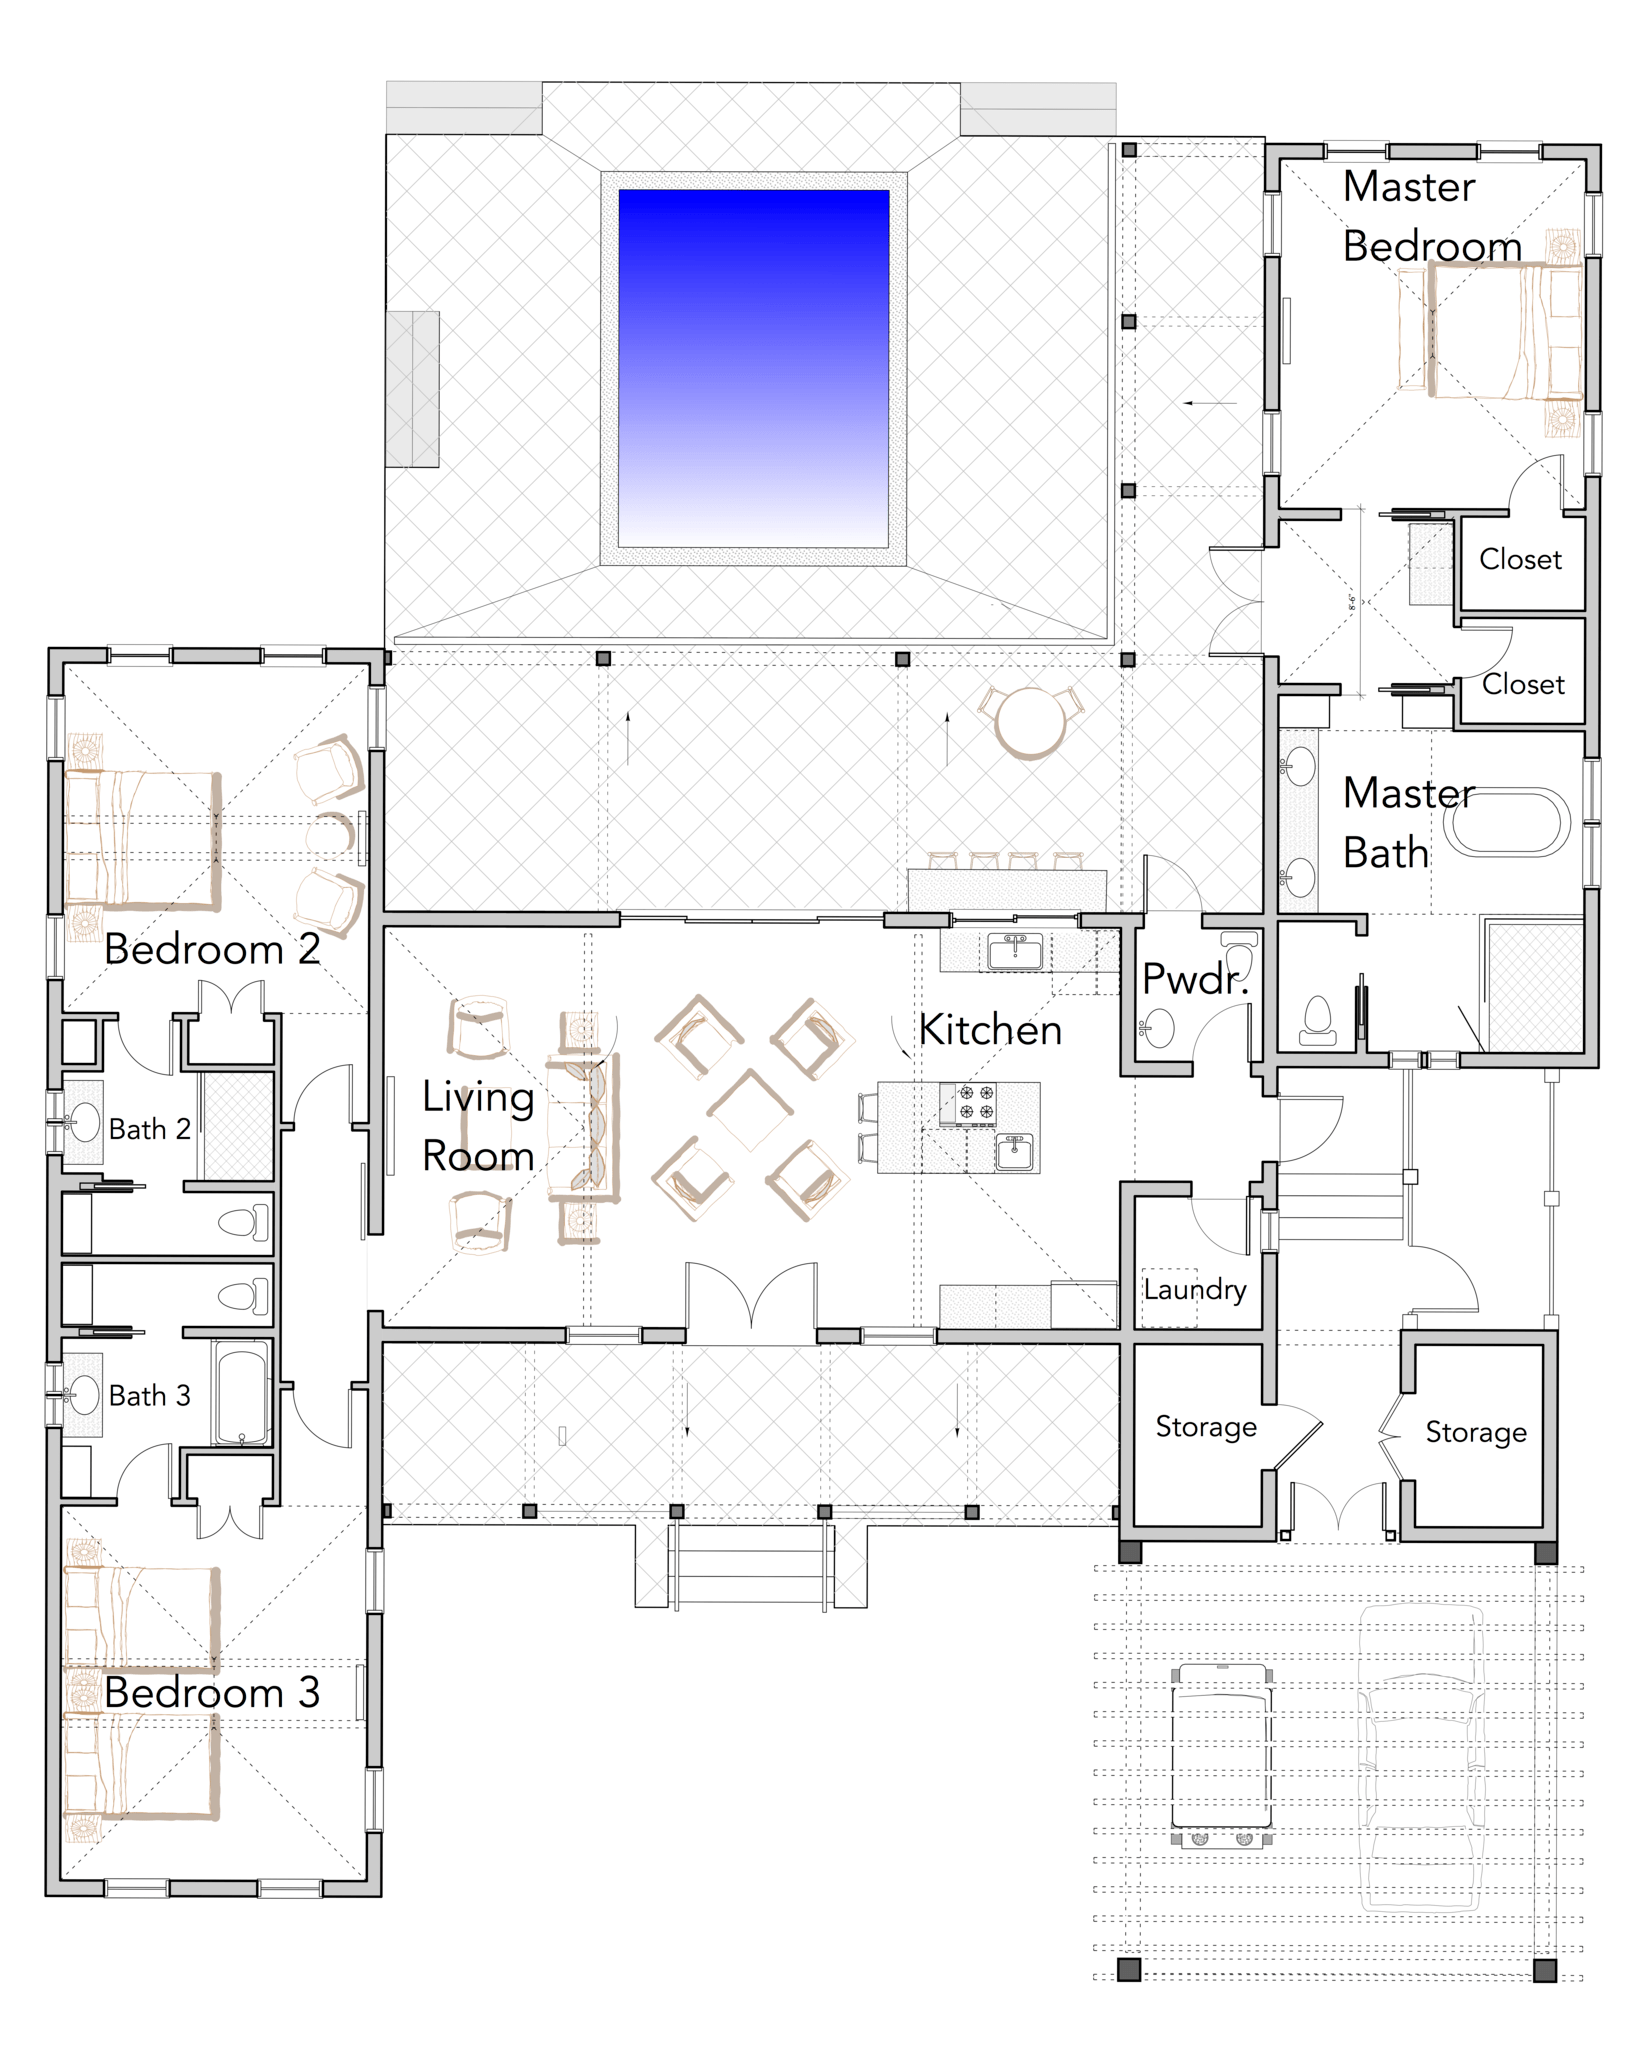 Lake Home Designs as well 7C 7Cs1 ibtimes   7Csites 7C  ibtimes   7Cfiles 7Cstyles 7Cv2 article large 7Cpublic 7C2012 7C01 7C21 7C219991 Brittany Kerr together with Courtyard Floor Plans additionally Perry Homes Floor Plans Luxury Homes Floor Plans Perry Homes Floor Plans San Antonio as well 516225176012311140. on perry homes designs